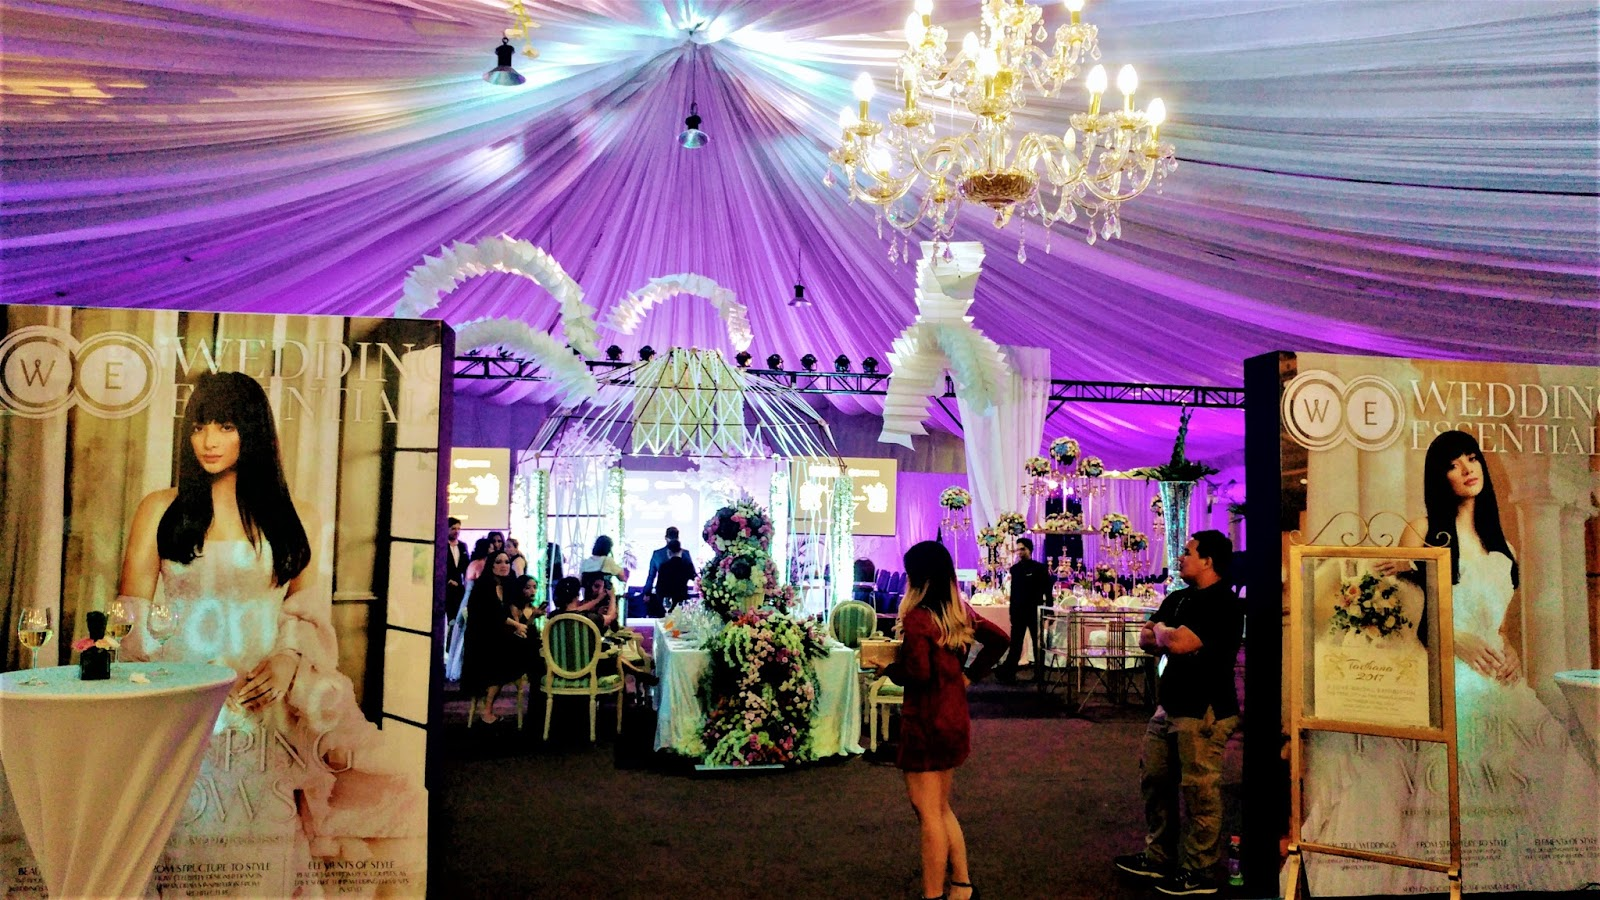 The manila hotel and wedding essentials collaborate for tadhana tadhana 2017 in its celebration of love and romance will also be featuring works of khai villanueva kat corpus catherine cavilte rafael louis gonzalez junglespirit Choice Image